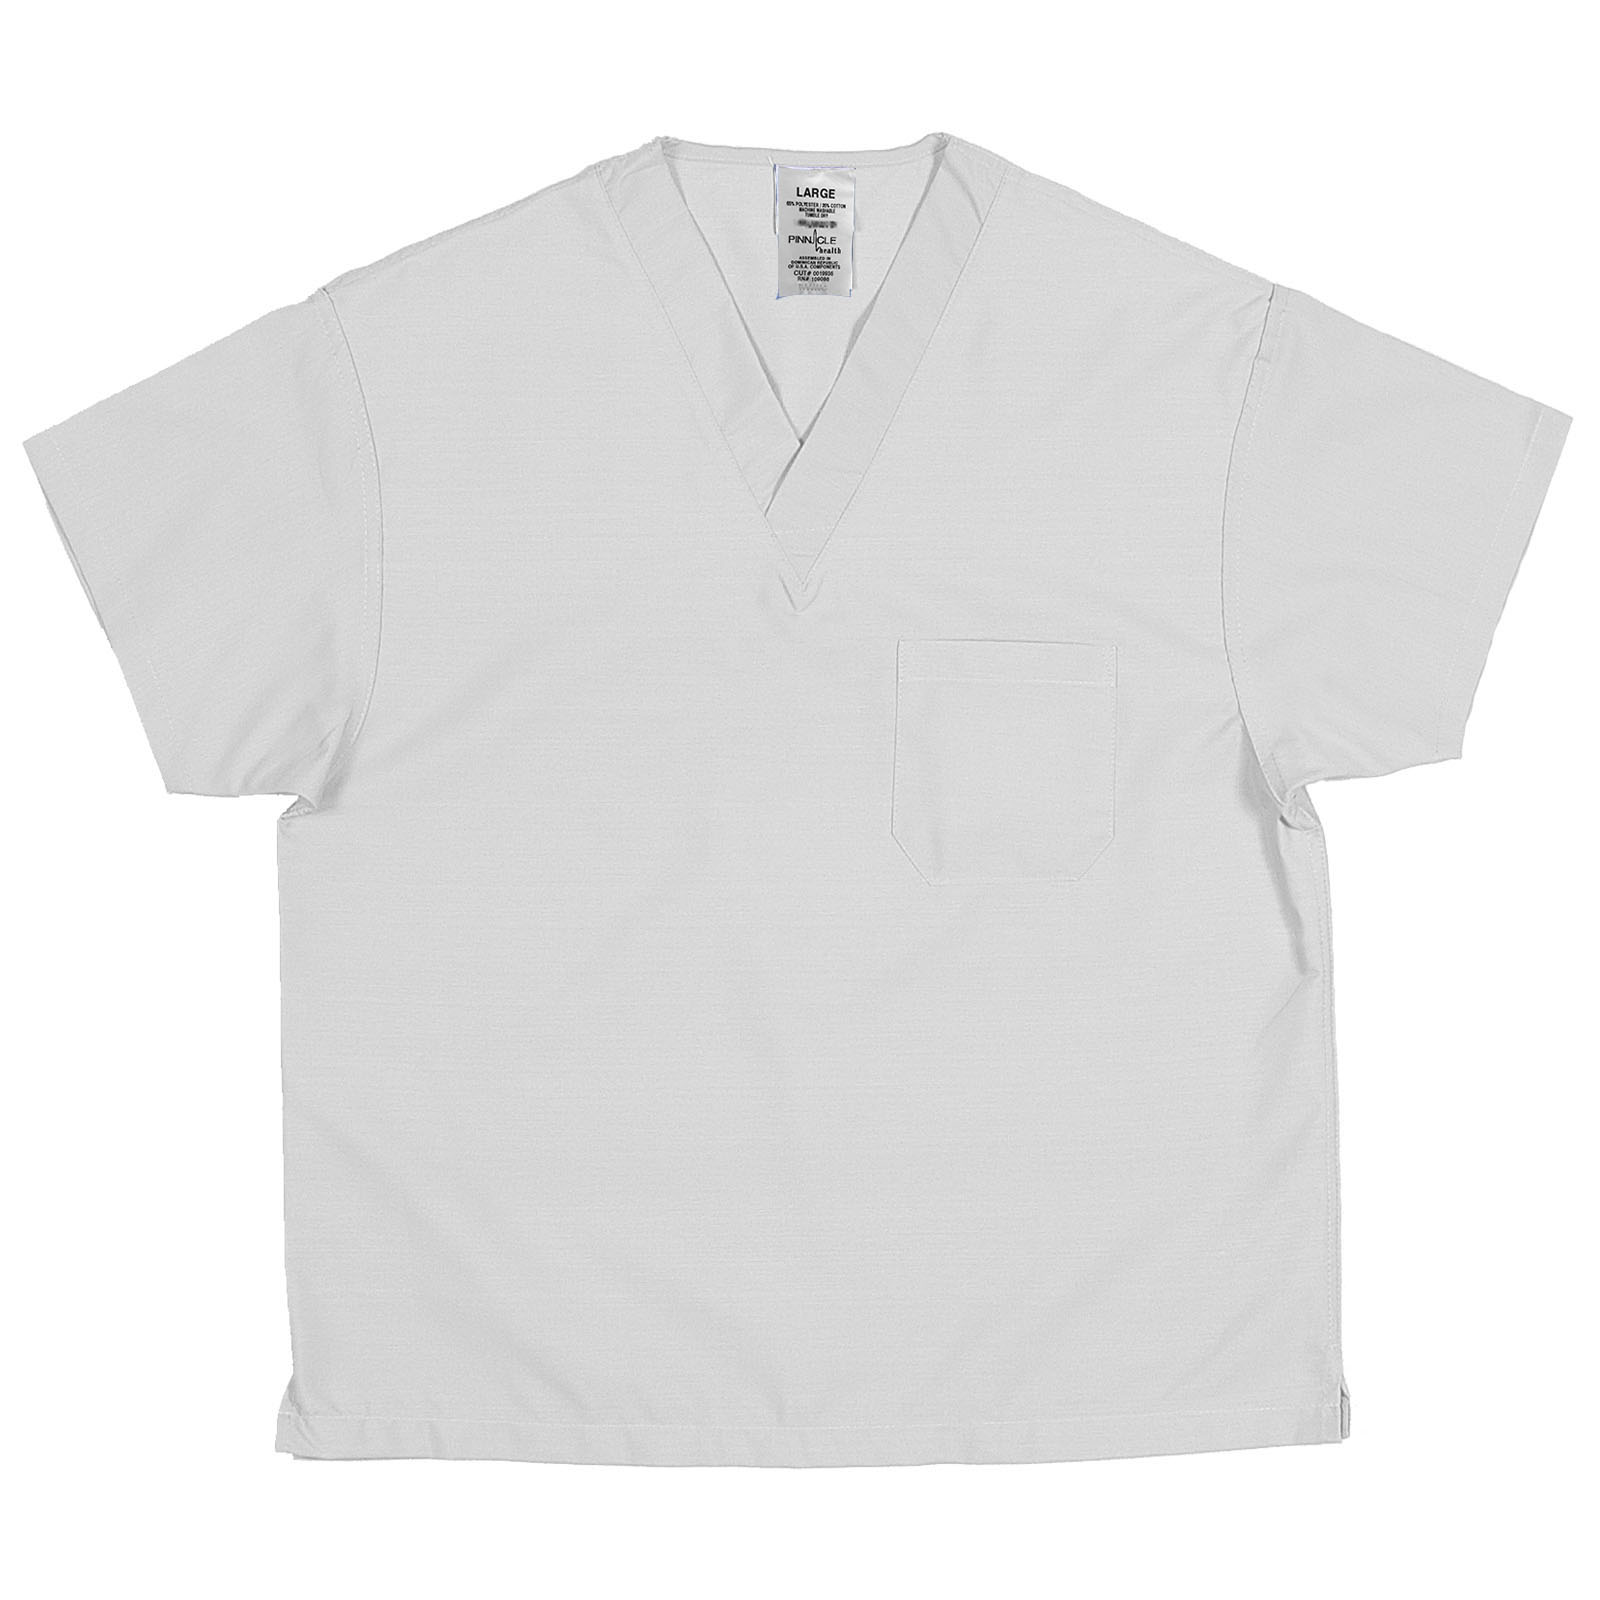 SSVNRDC - 65/35, White, Poly/Cotton Poplin V-Neck Top